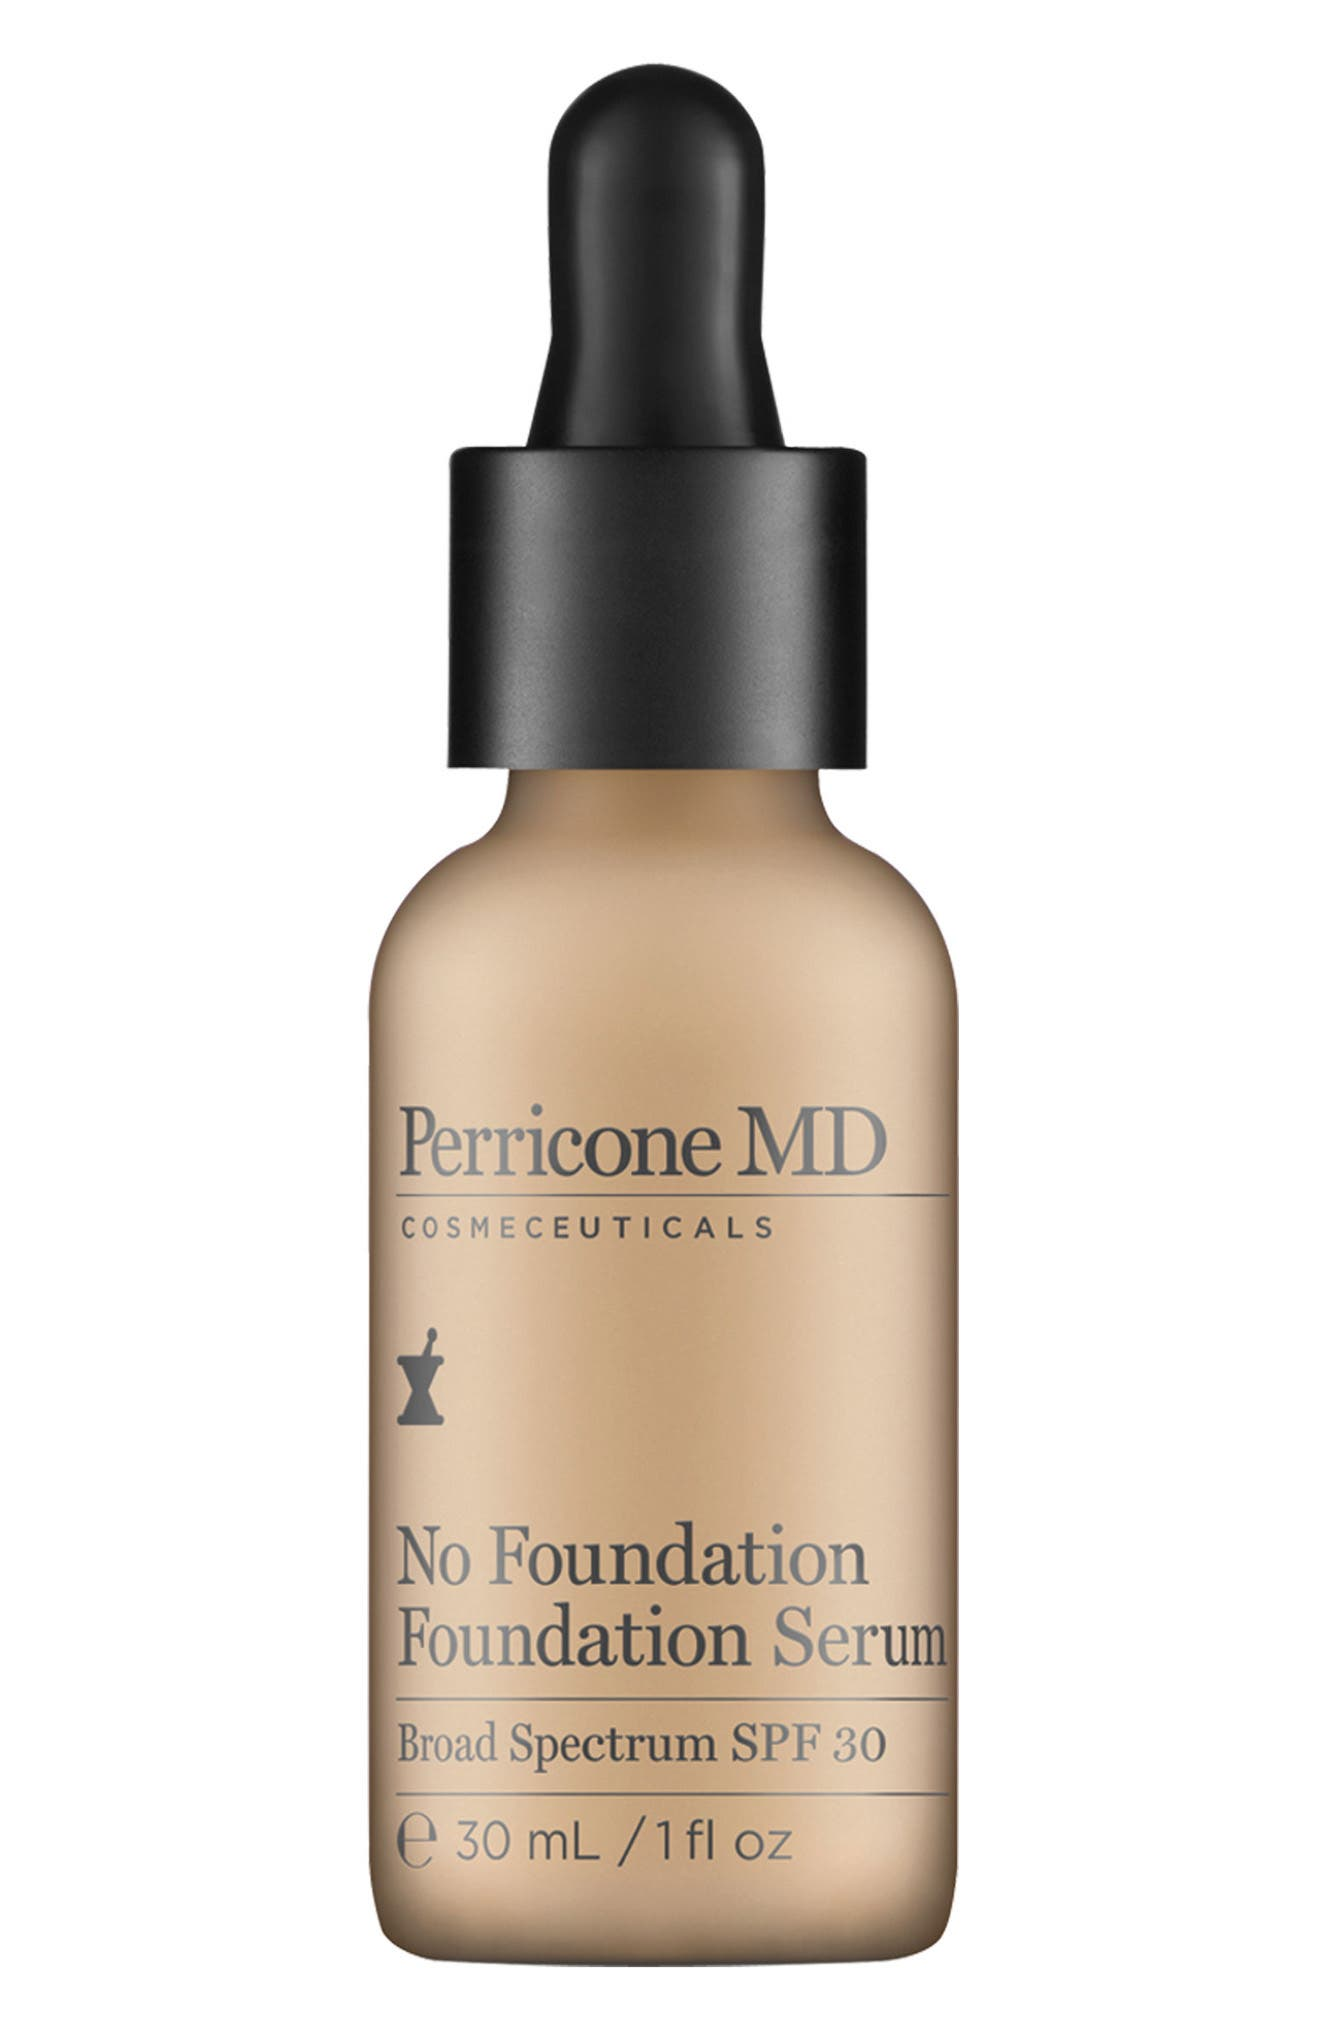 Alternate Image 1 Selected - Perricone MD 'No Foundation' Foundation Serum Broad Spectrum SPF 30